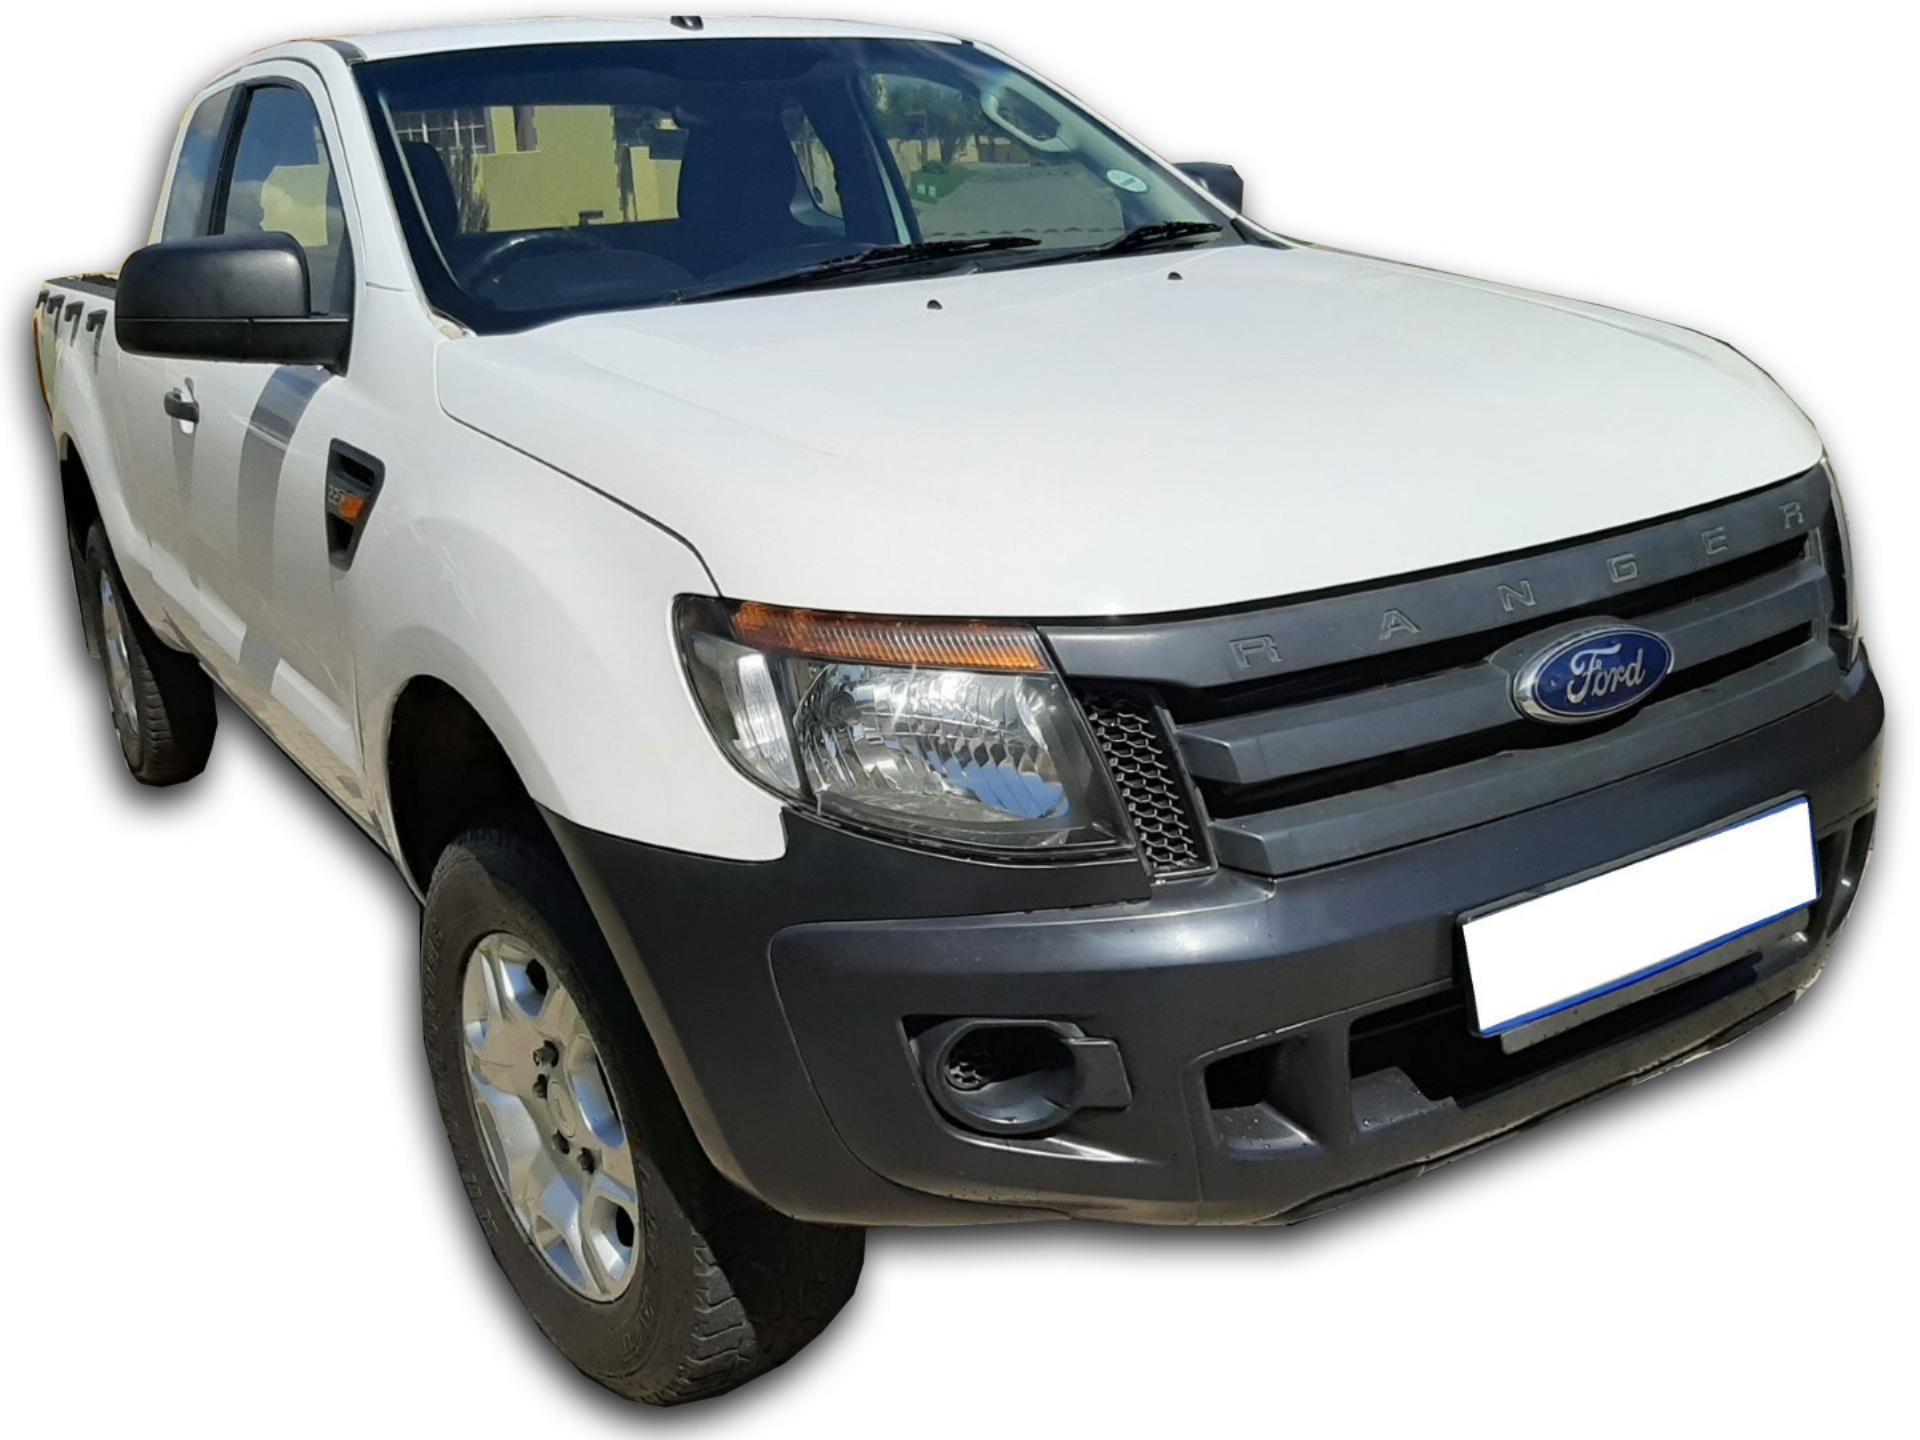 Ford Ranger Supercab 2.2